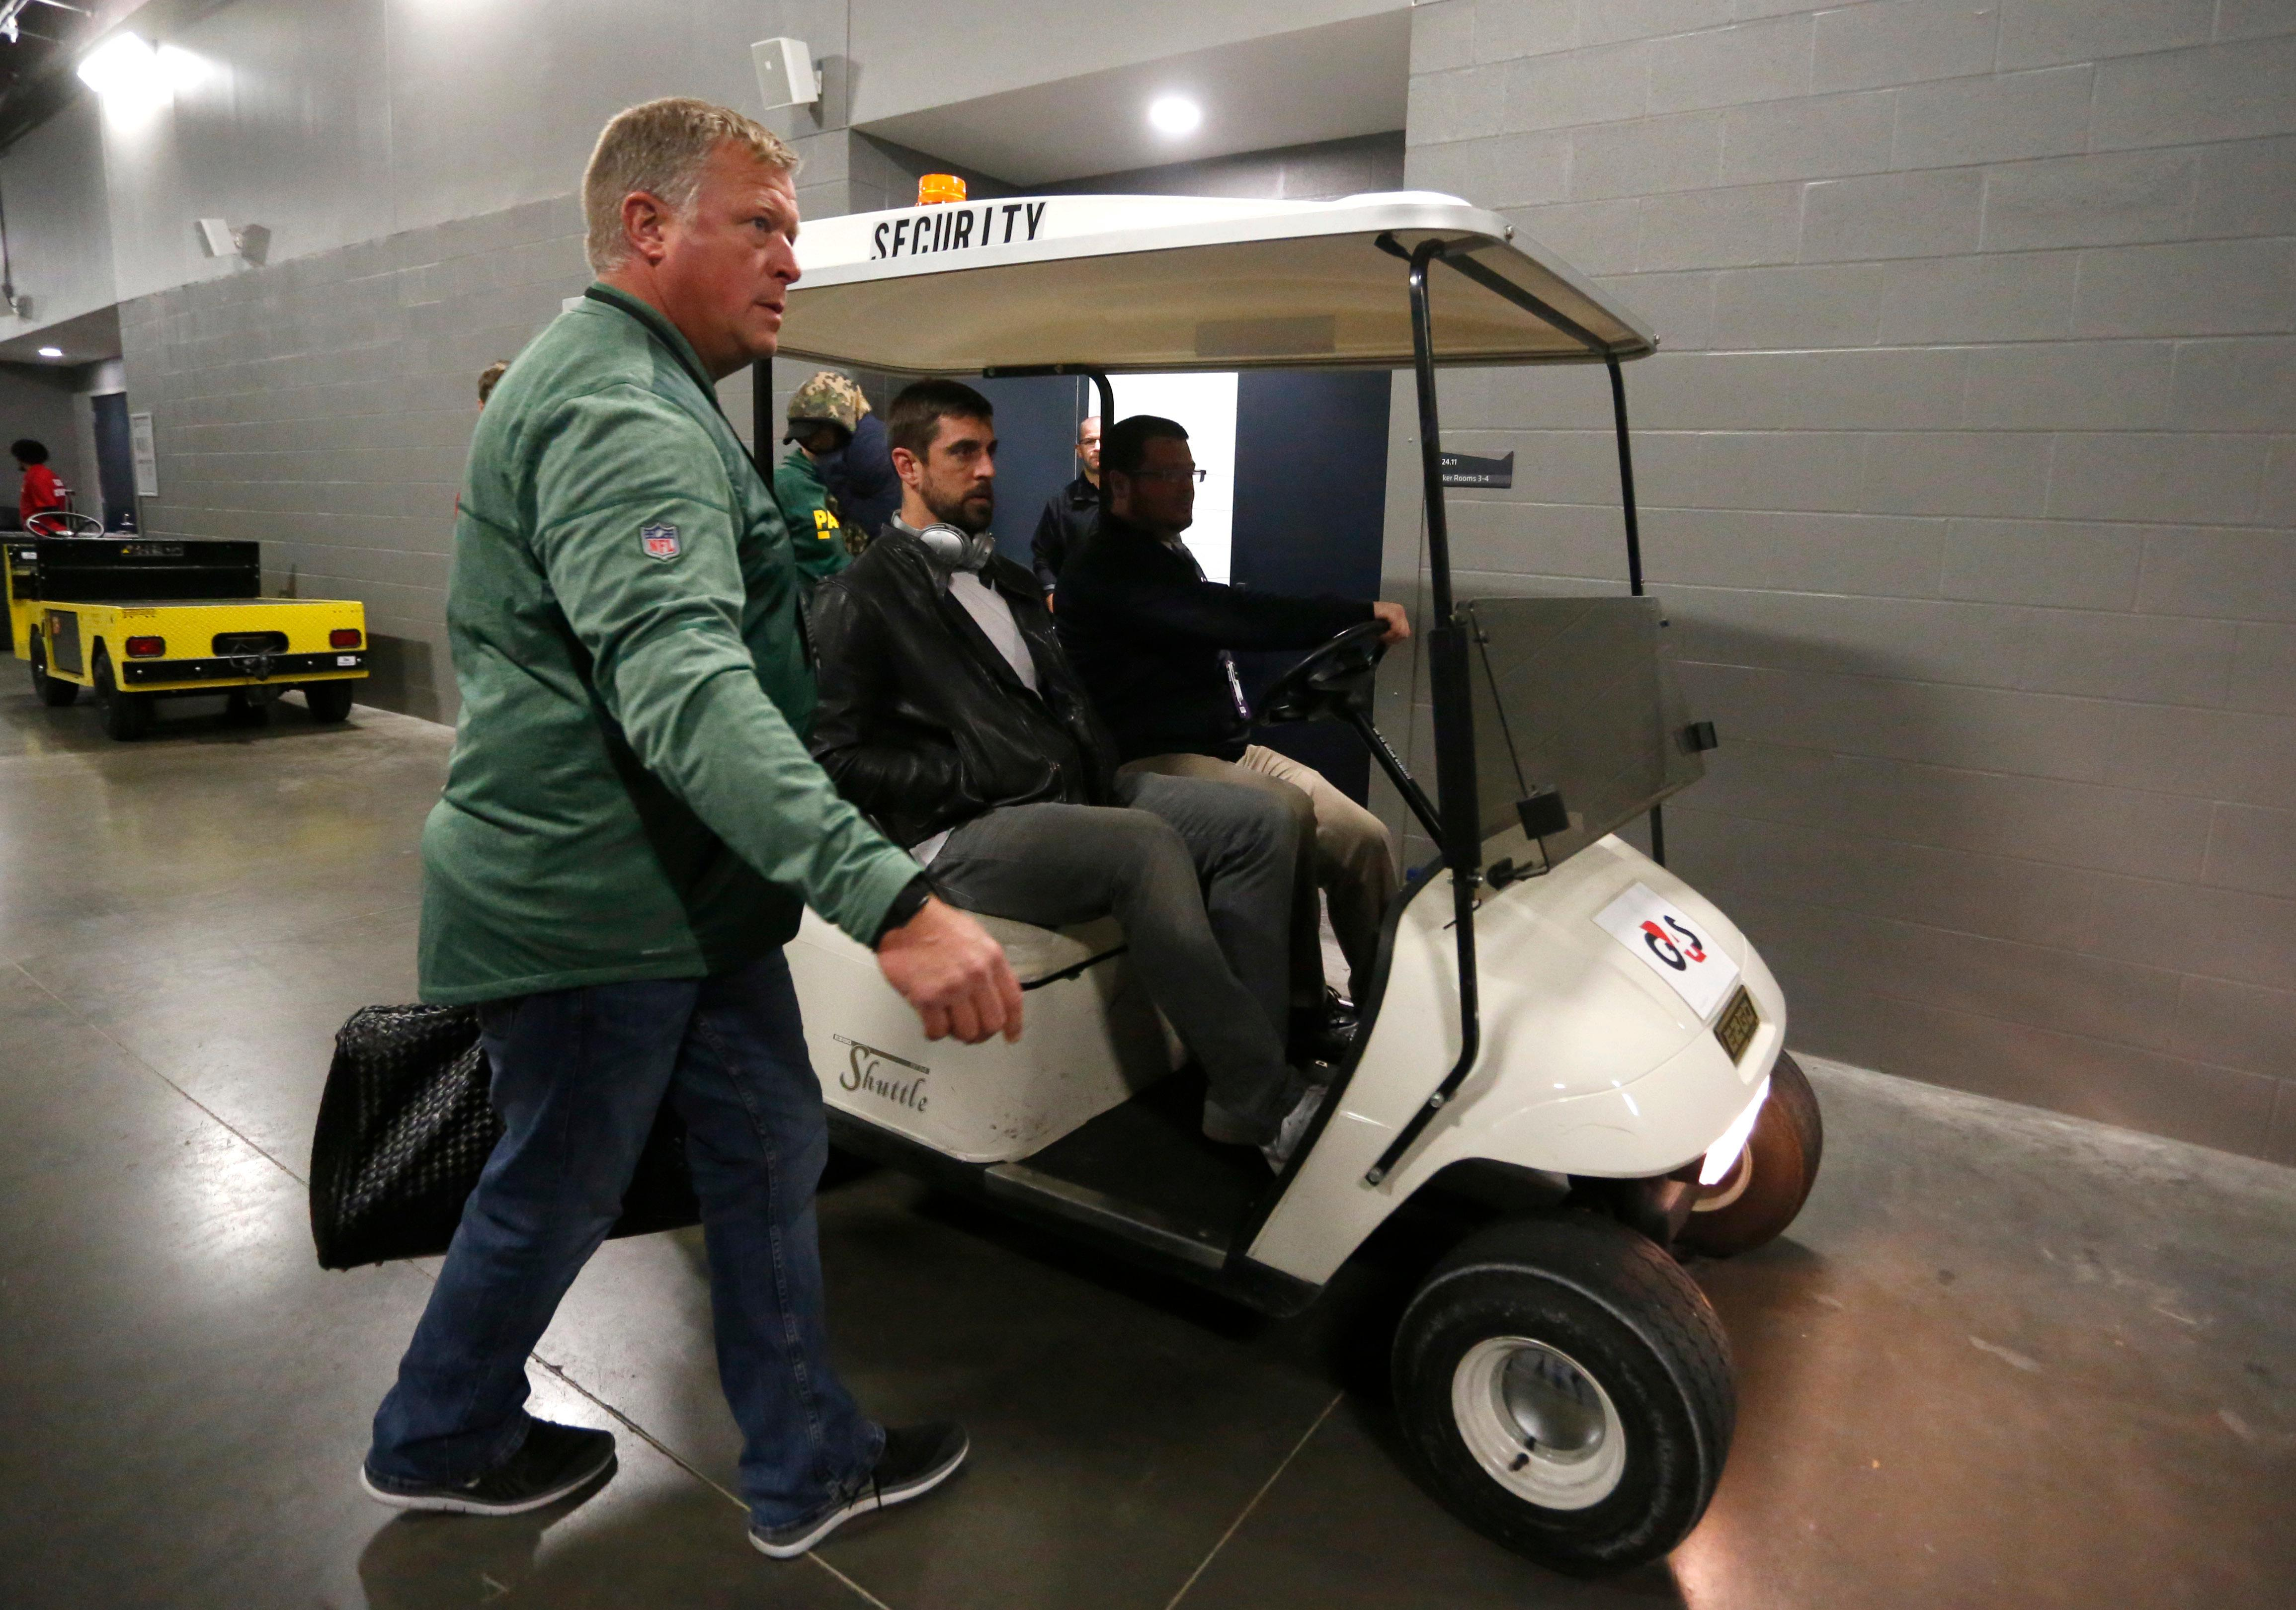 Green Bay Packers quarterback Aaron Rodgers leaves the locker room after a game against the Minnesota Vikings in Minneapolis, Sunday, Oct. 15, 2017. Rodgers broke his collarbone in the first half. (AP Photo/Bruce Kluckhohn)